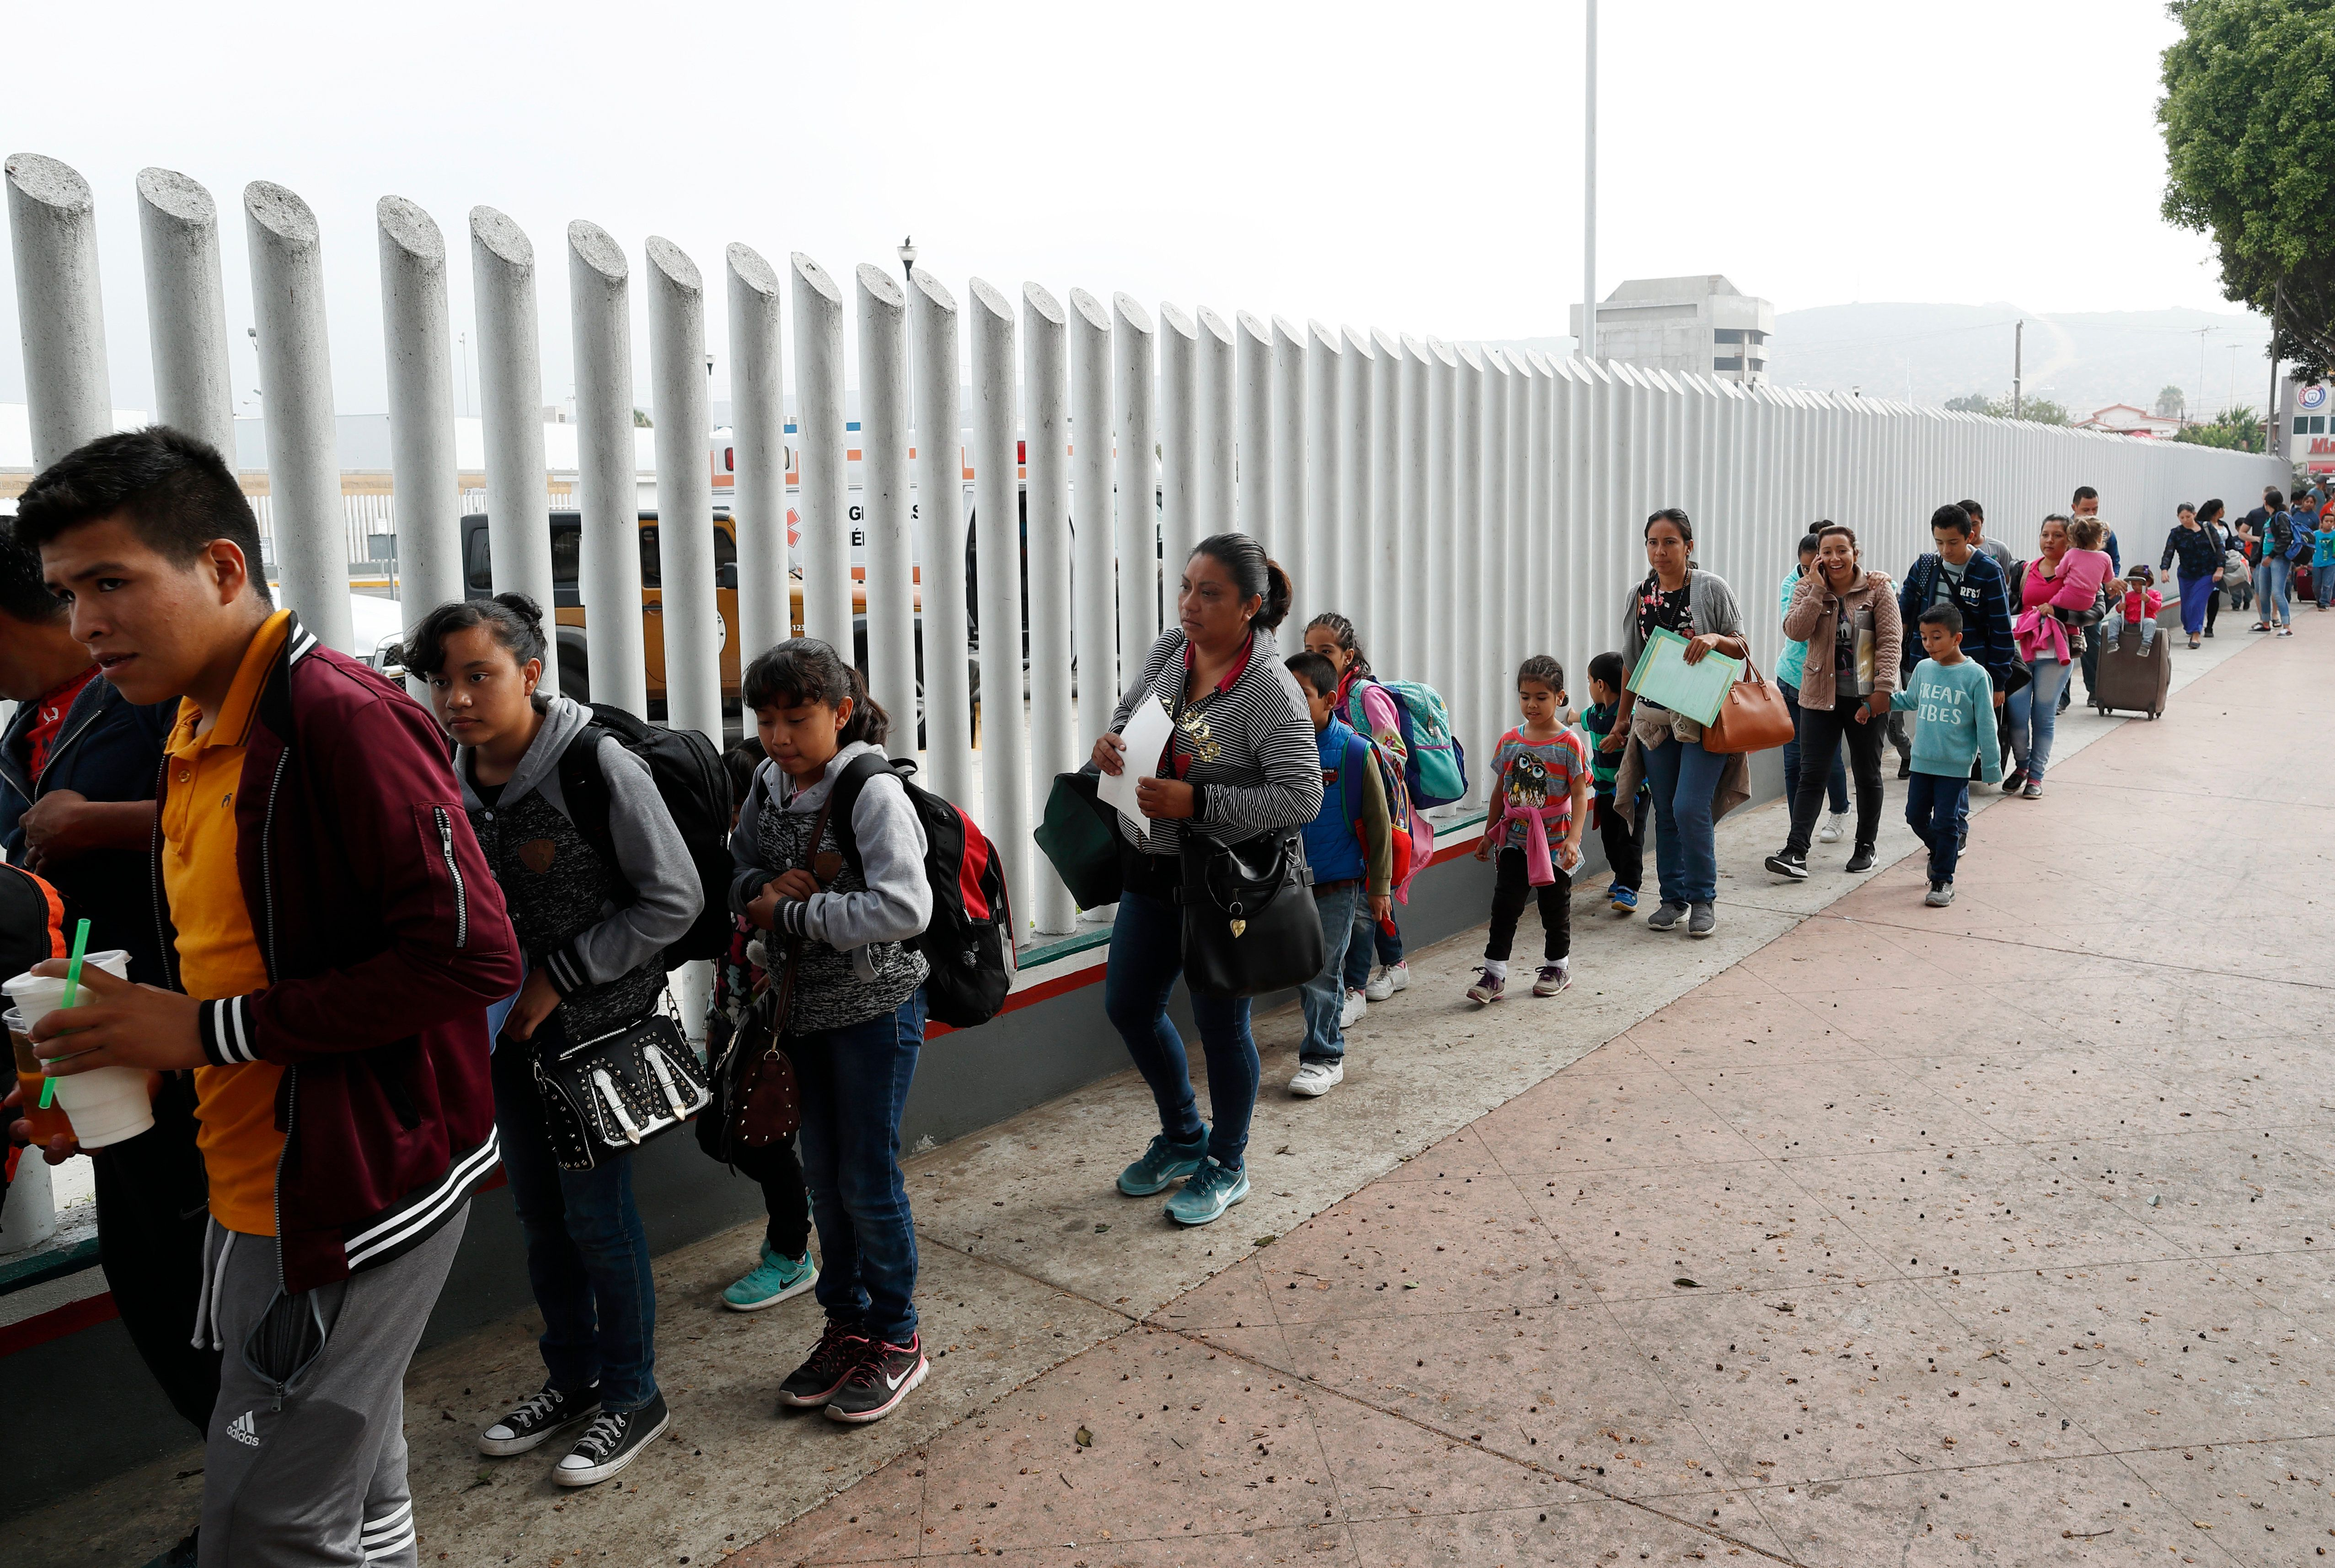 "FILE - In this Thursday, July 26, 2018 photo people line up to cross into the United States to begin the process of applying for asylum near the San Ysidro port of entry in Tijuana, Mexico. A federal judge has extended a freeze on deporting families separated at the U.S.-Mexico border, giving a reprieve to hundreds of children and their parents to remain in the United States. U.S. District Judge Dana Sabraw said in his order Thursday, Aug. 16, 2018, that ""hasty"" deportation of children after reunification with their parents would deprive them of their right to seek asylum. (AP Photo/Gregory Bull,File)"